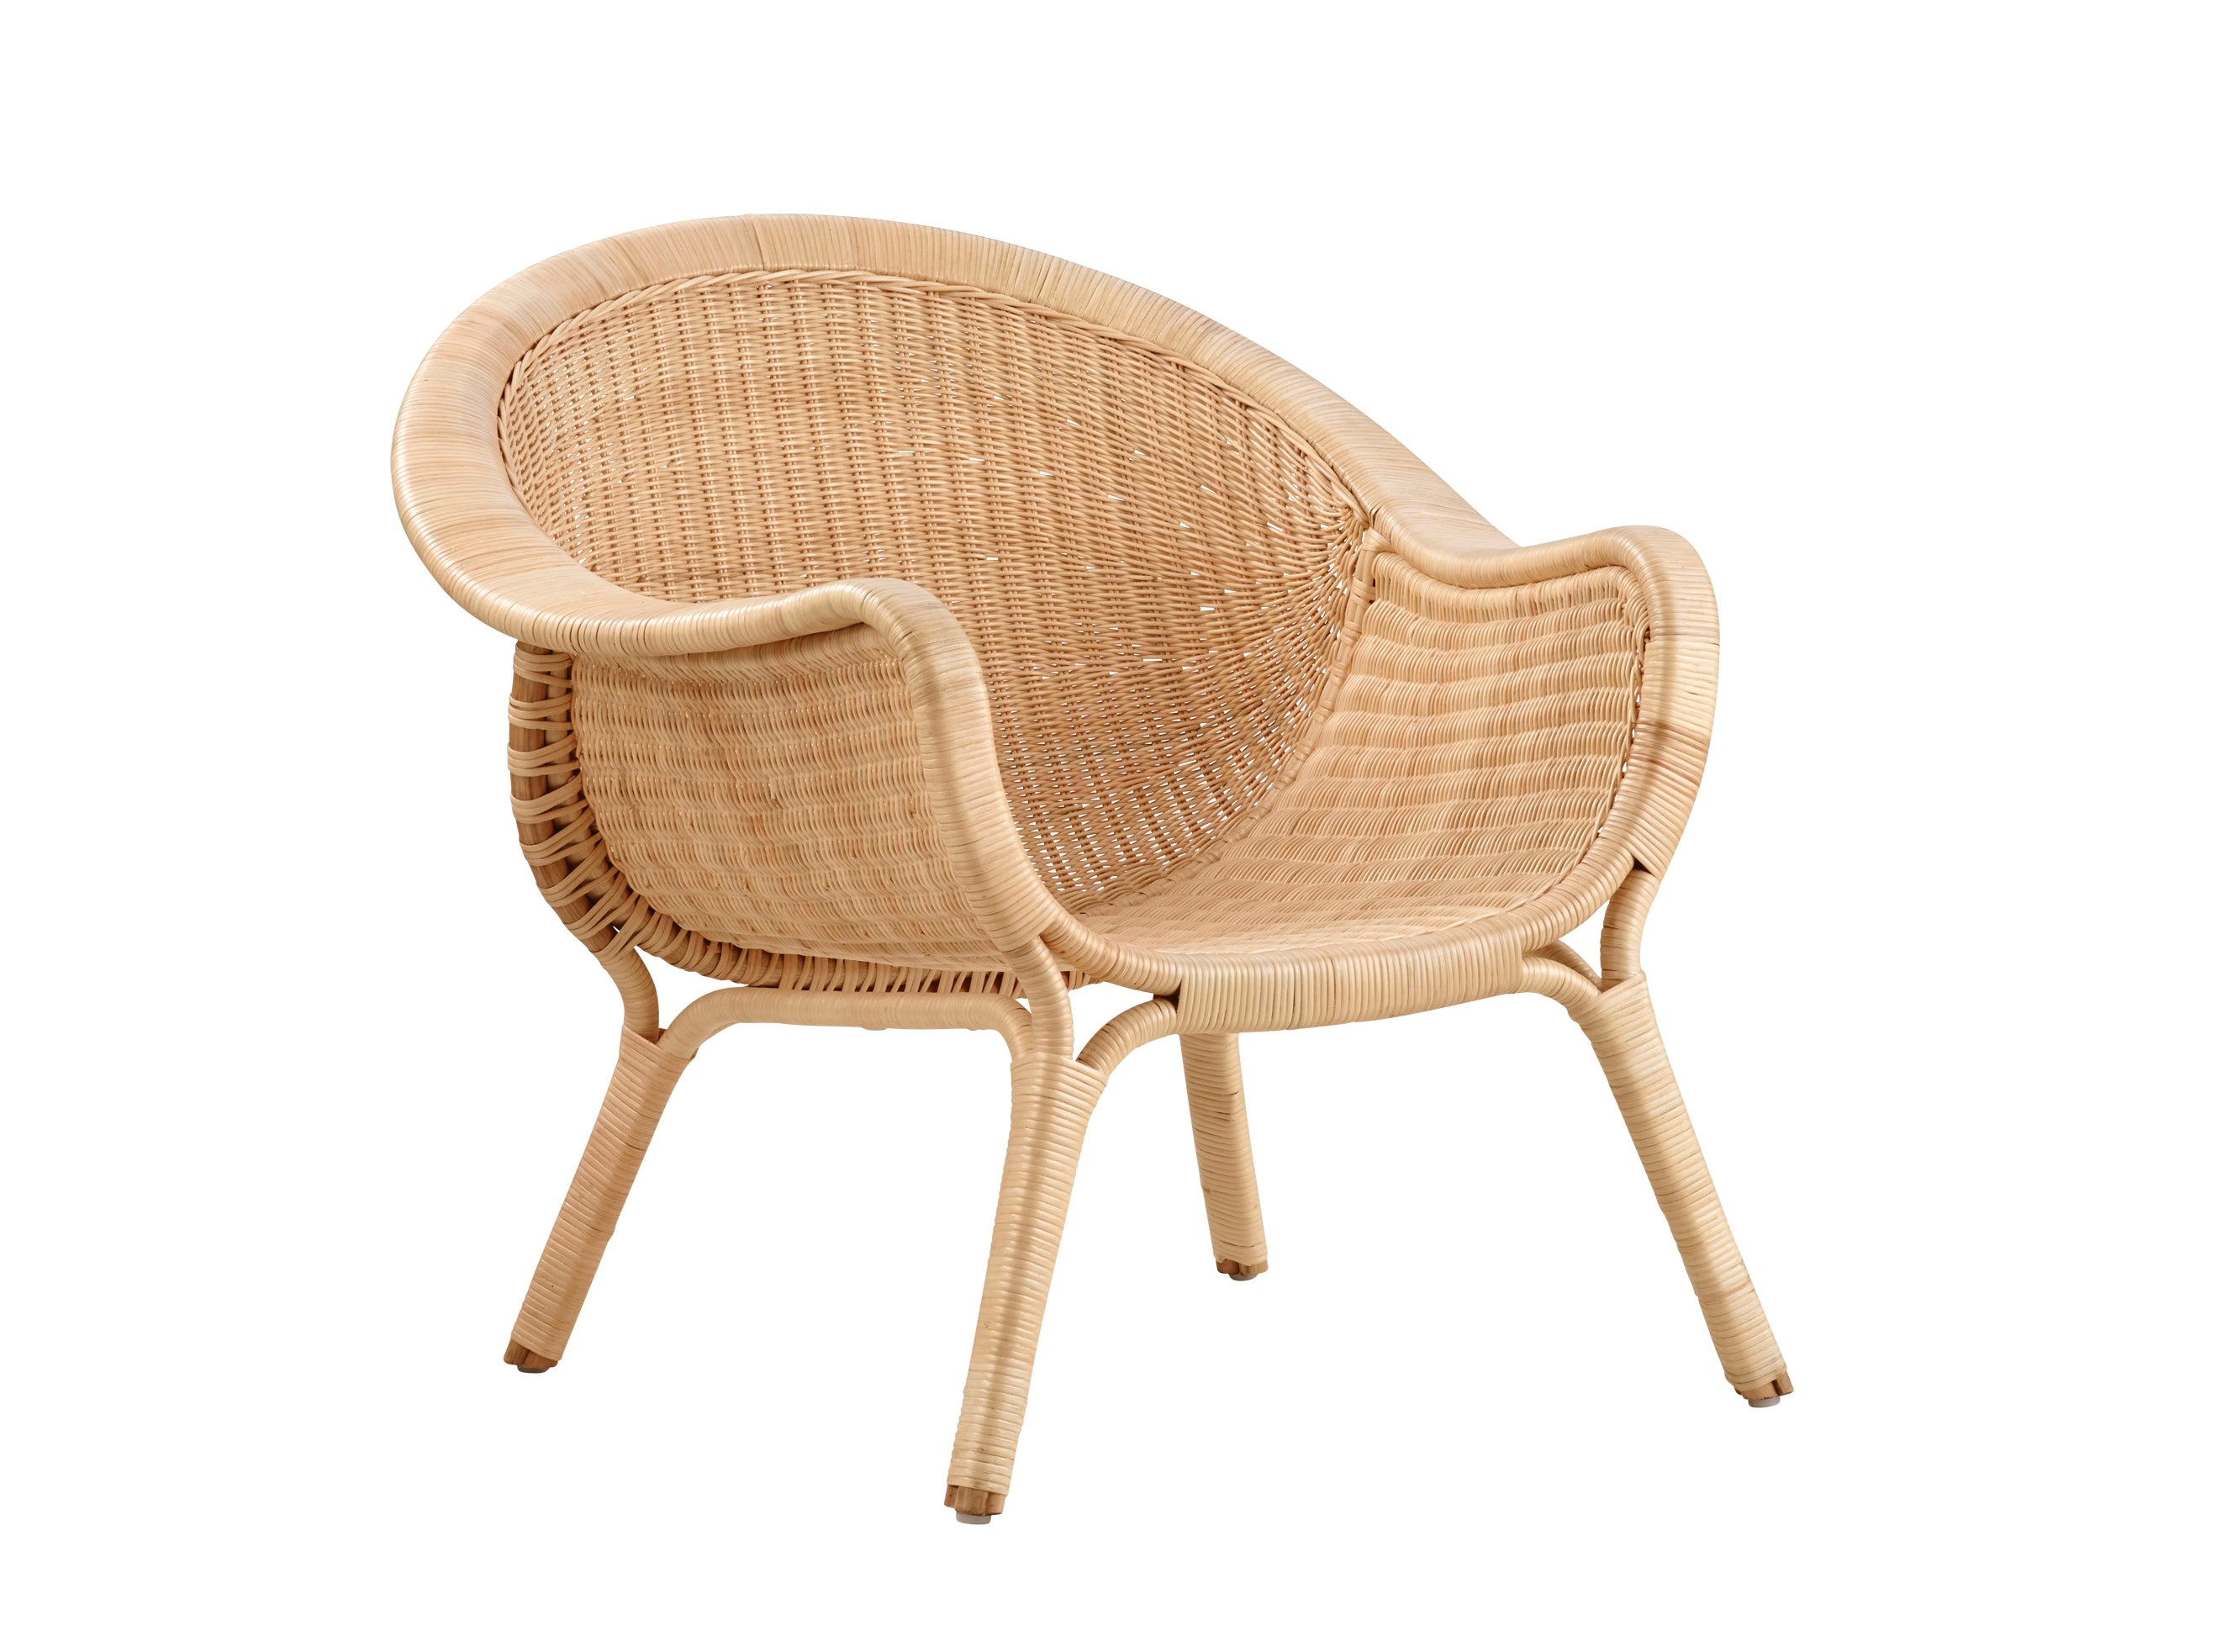 Subscription_OMNI_Nanna_Ditzel_Armchair_Danish_design_furniture_office_comfortable_elegant_material_rattan